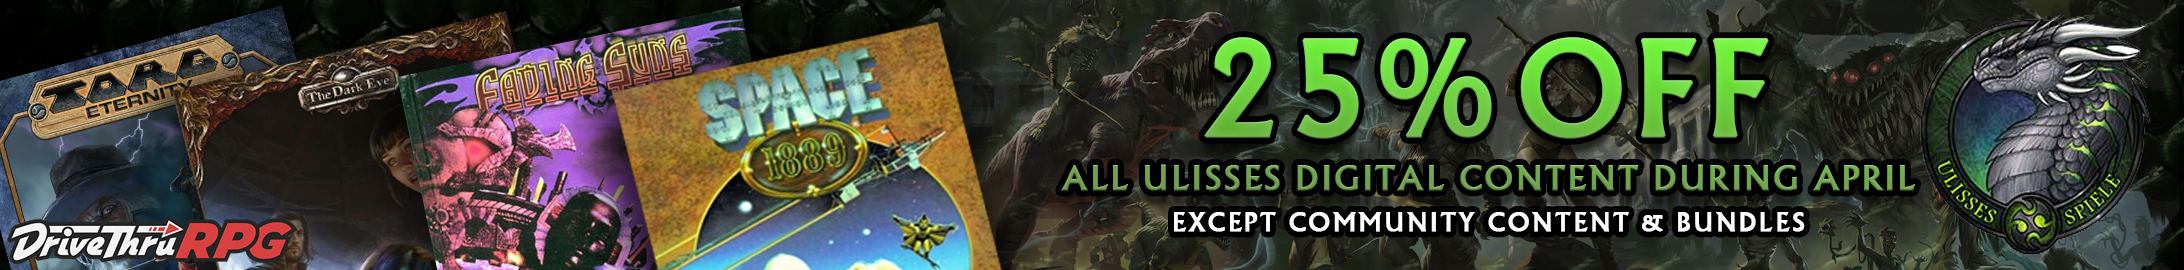 Ulisses 25% off during April